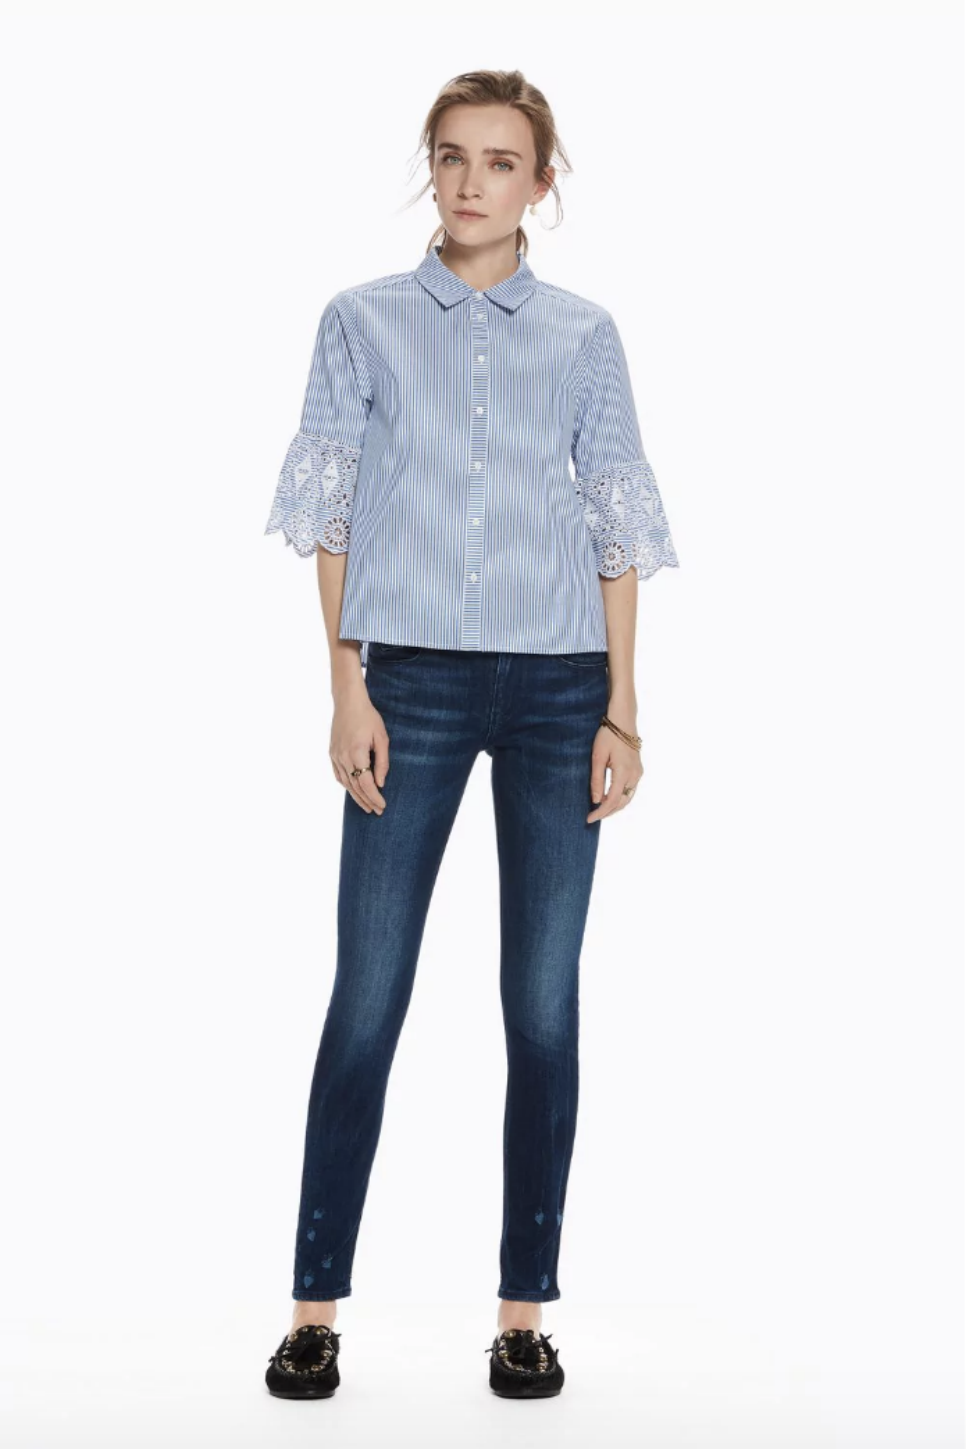 Scotch and Soda - Embroidered Sleeve Button Up - Blue Stripe